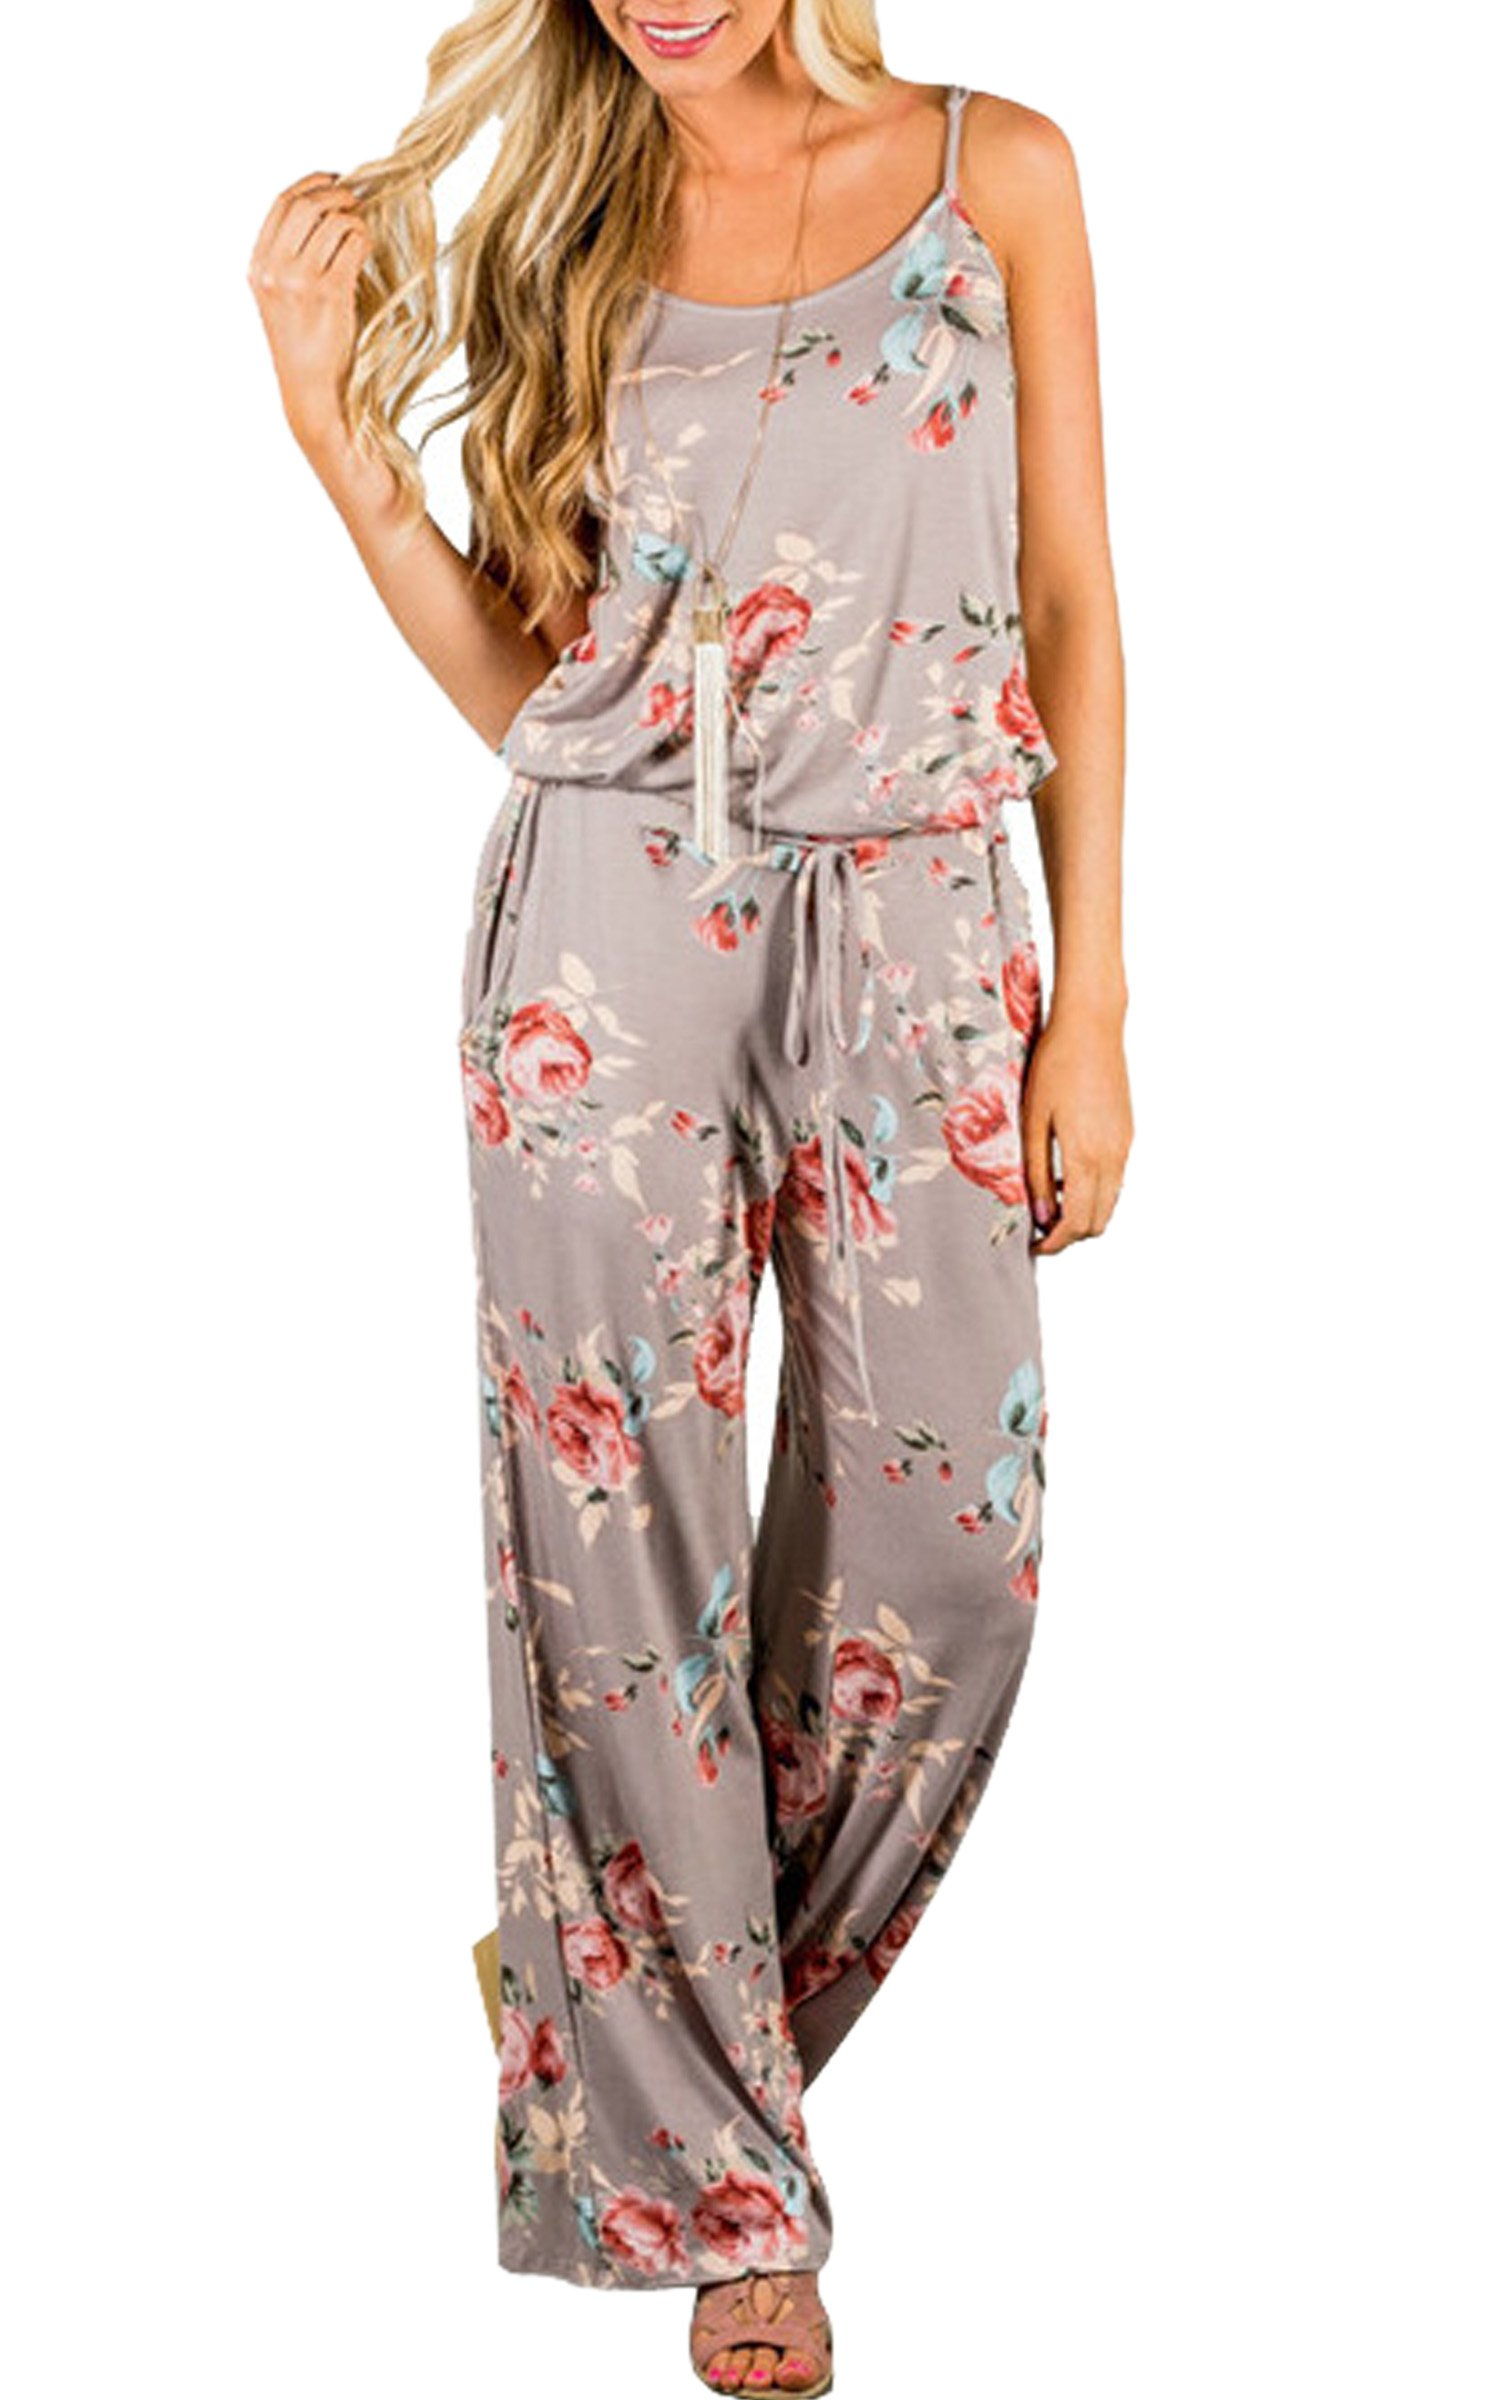 ECOWISH Womens Summer Floral Printed Halter Sleeveless Casual Strap Jumpsuit, Khaki, Large